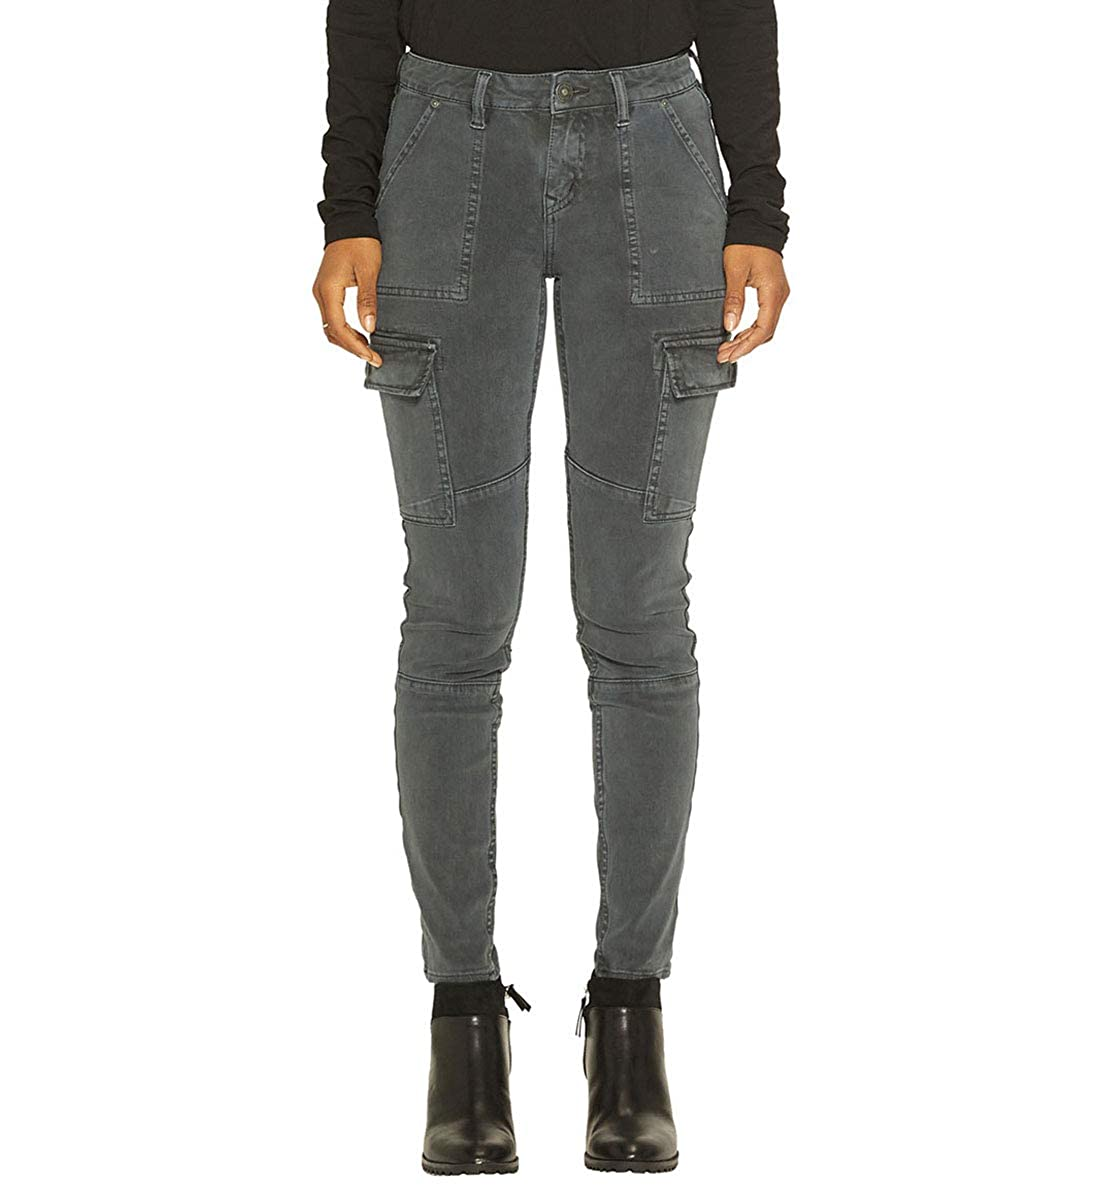 CHARCOAL Silver Jeans Womens Standard Mid Rise Skinny Cargo Jeans